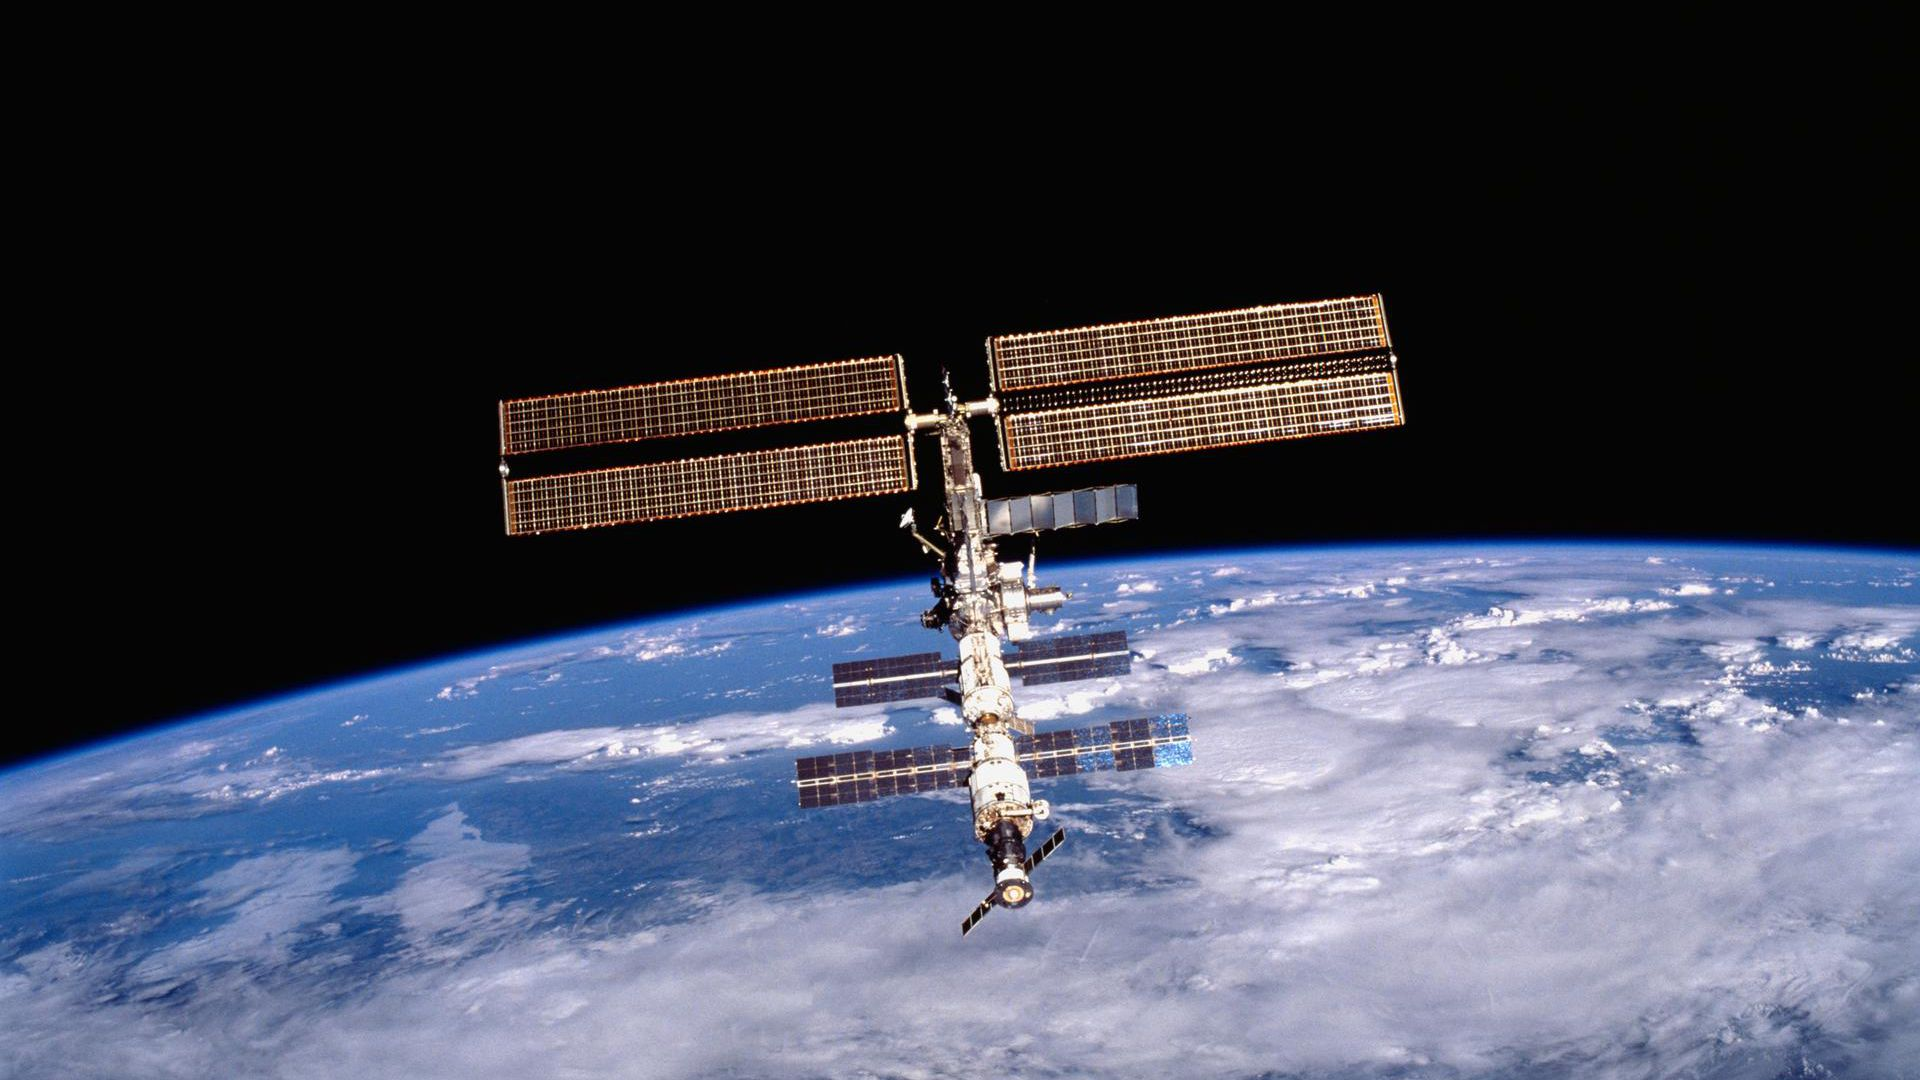 The debate over the space station's future